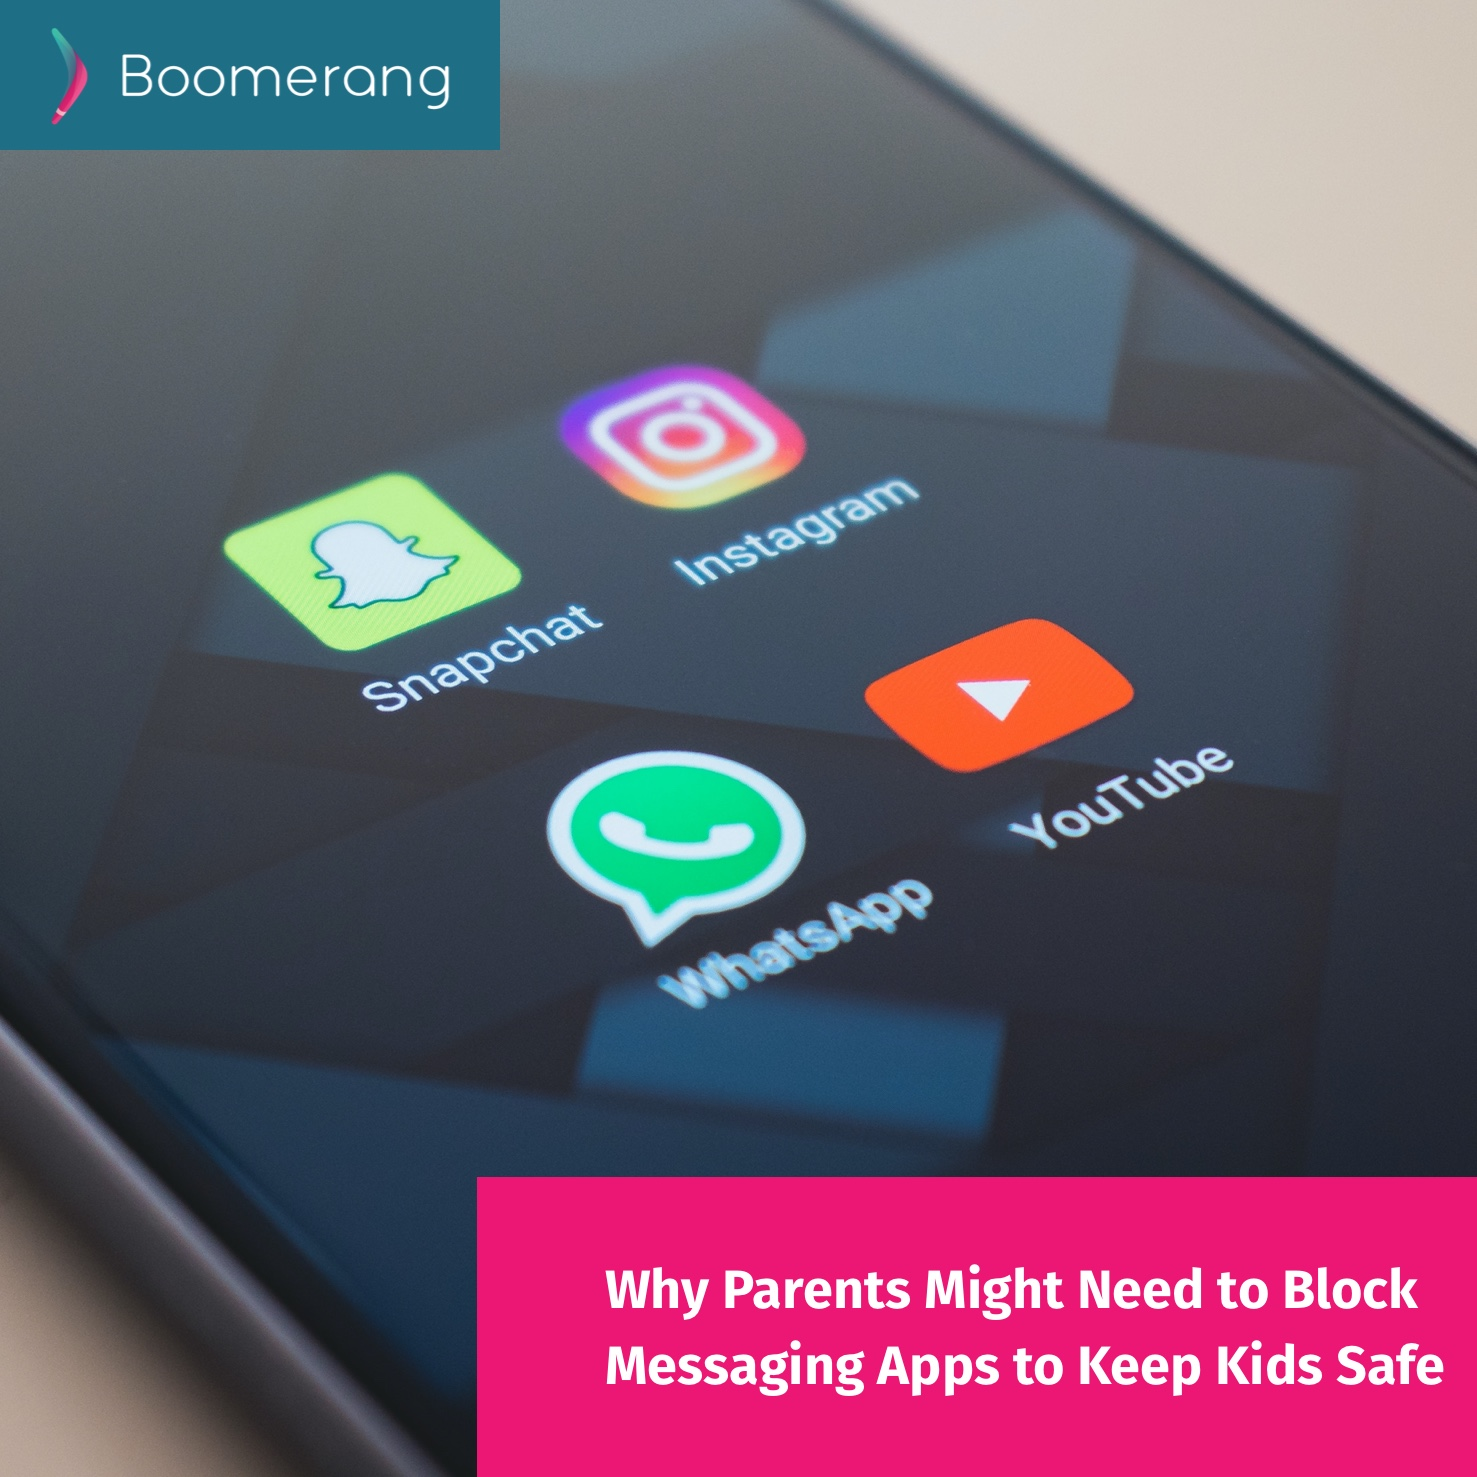 Why Parents Might Need to Block Messaging Apps to Keep Kids Safe